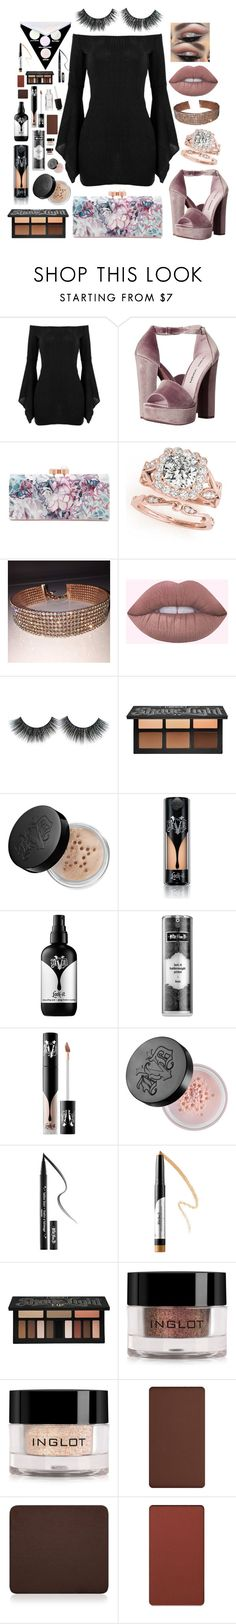 """""""Untitled #63"""" by sarahdoyle448 ❤ liked on Polyvore featuring Chinese Laundry, Ted Baker, Kat Von D and Inglot"""